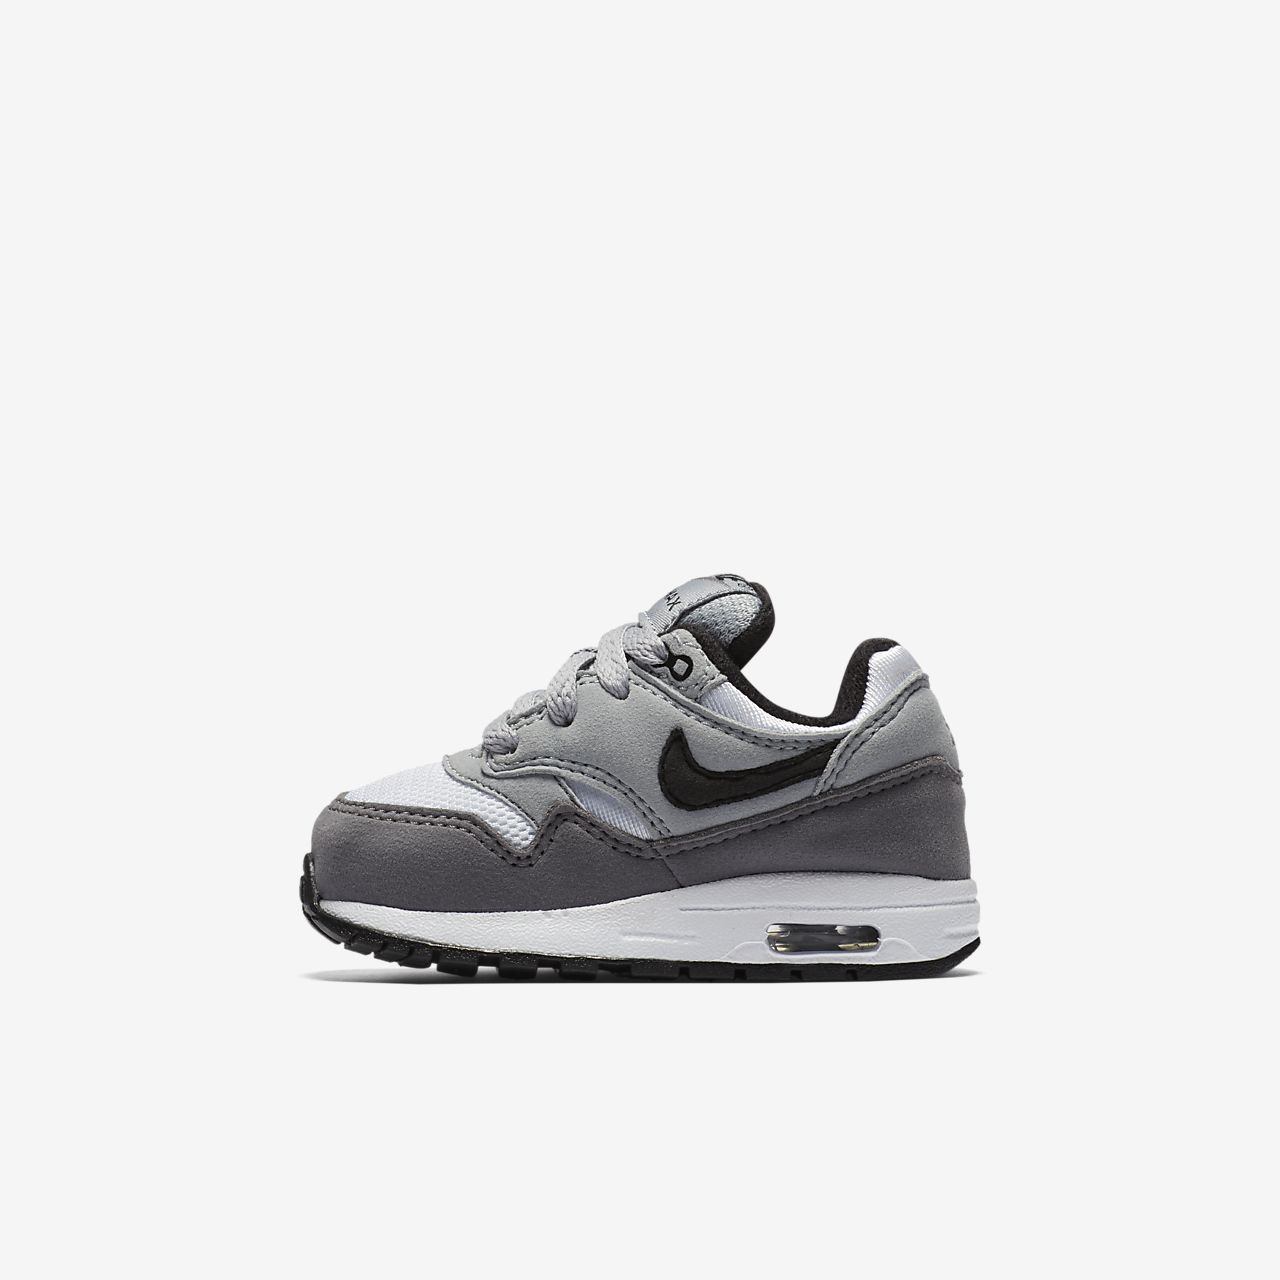 Details about Nike Air Max 90 Toddlers 408110 123 White Dark Cool Grey Shoes Baby Size 2